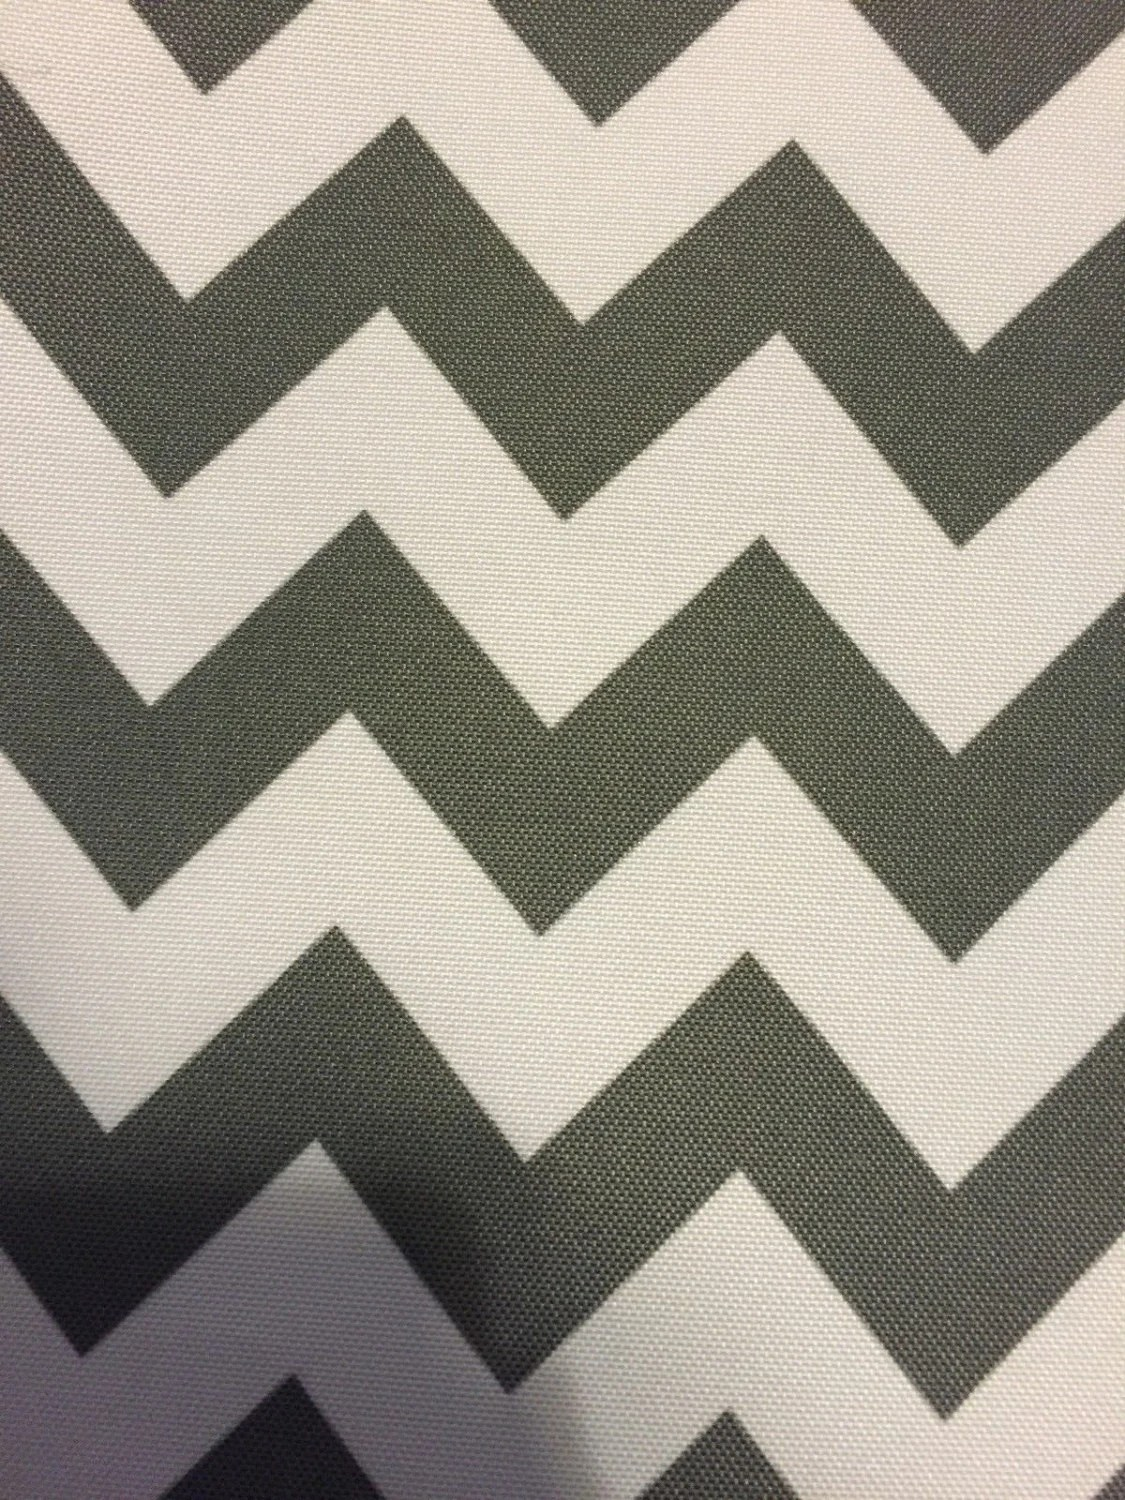 Outdoor Curtain Fabric By The Yard Gray White Chevron Indoor Outdoor Upholstery Drapery Fabric Sold